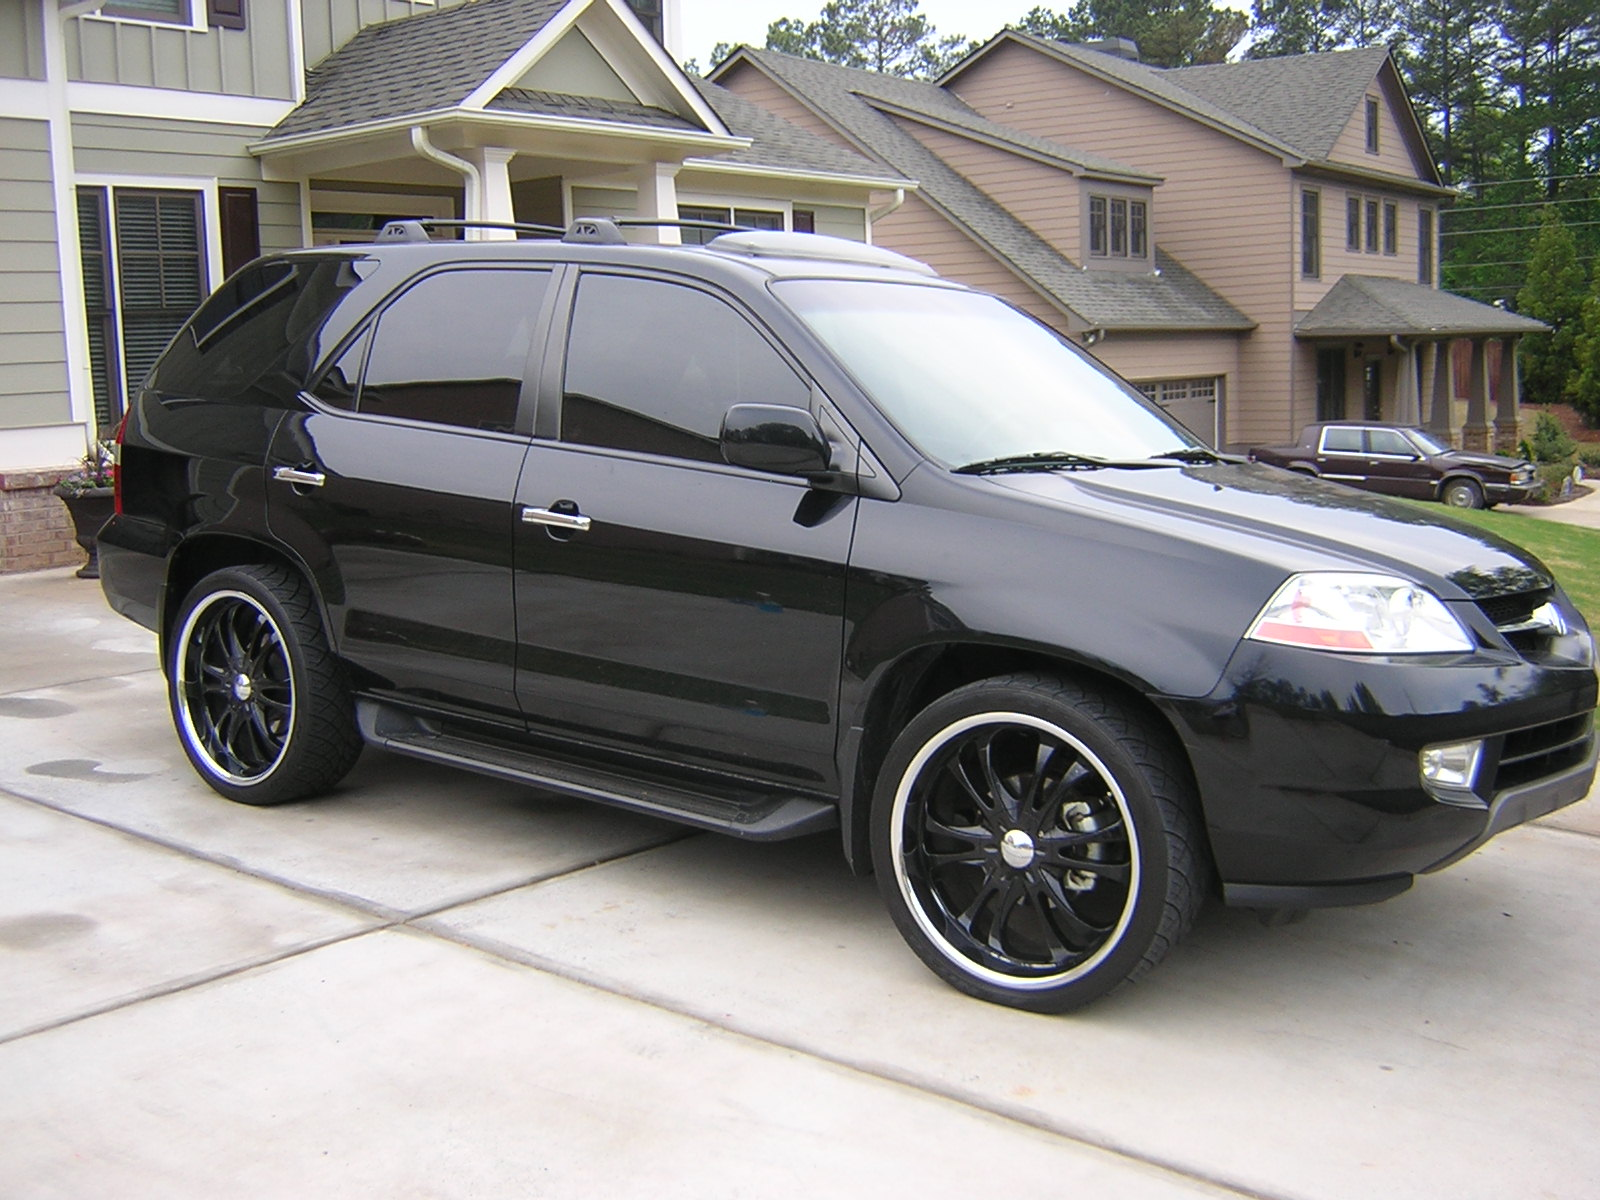 Acura Mdx Touring Pic X also Acura Mdx Touring Pic also Acura Mdx Premium Pic moreover Acura Mdx Dr Suv Touring Fq Oem as well Acura Mdx Touring Pic X. on 2002 acura mdx touring reviews